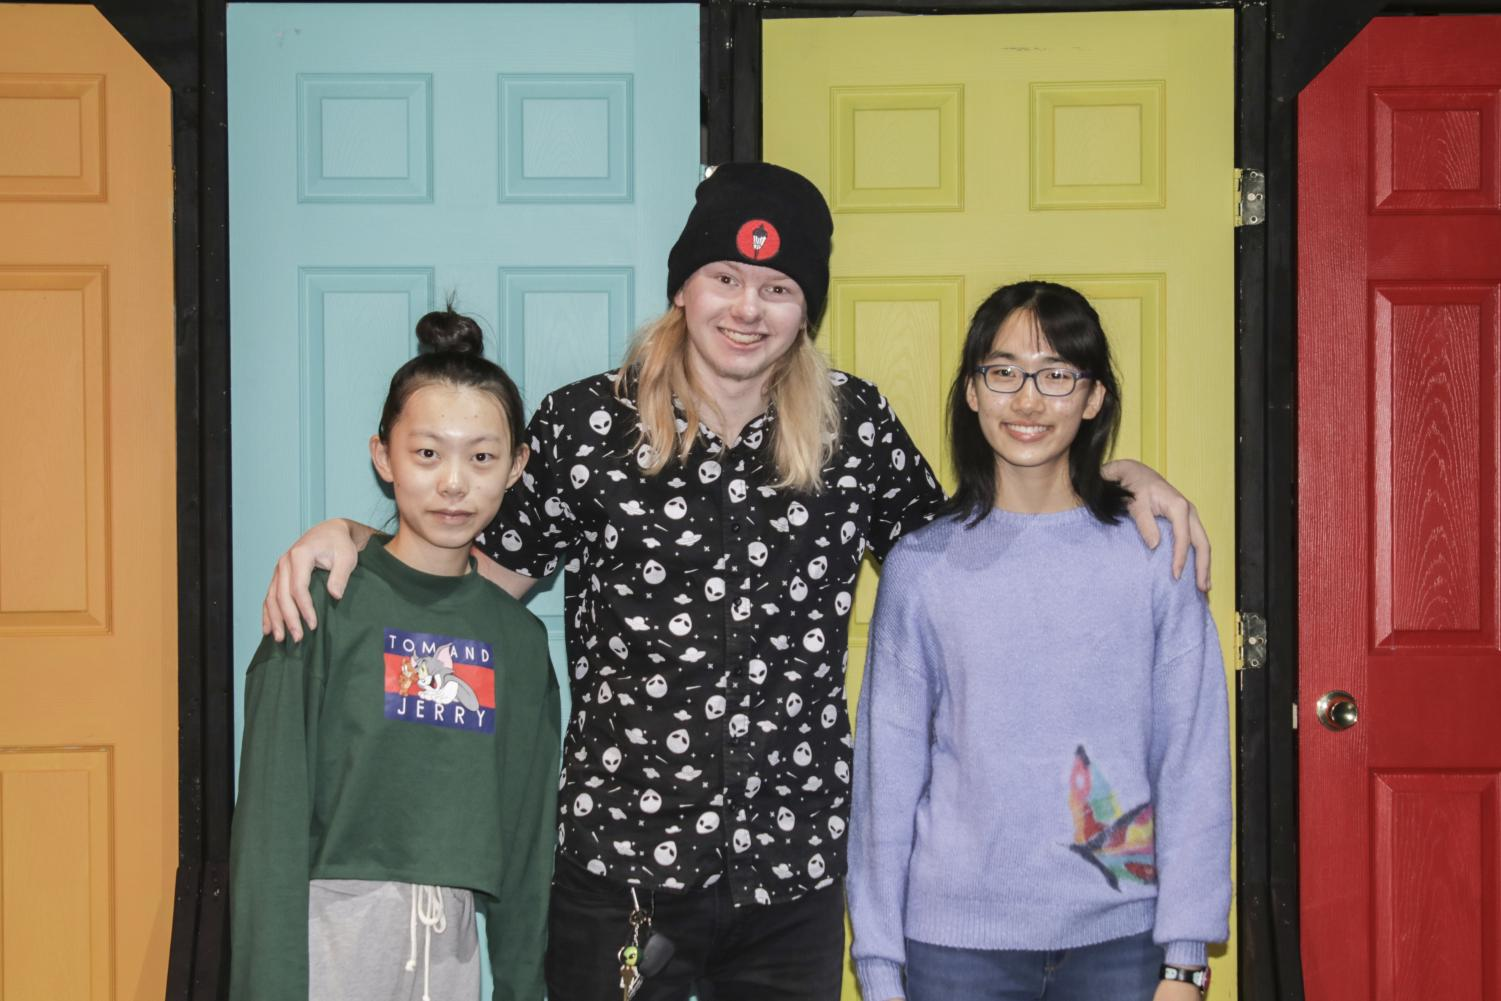 The general team, which has many members absent from the photo, is in charge of construction and builds the set. From left to right: freshman Yi Jing, senior Tucker Sutcliffe and freshman Betty Zhu. Photo by Sam White.